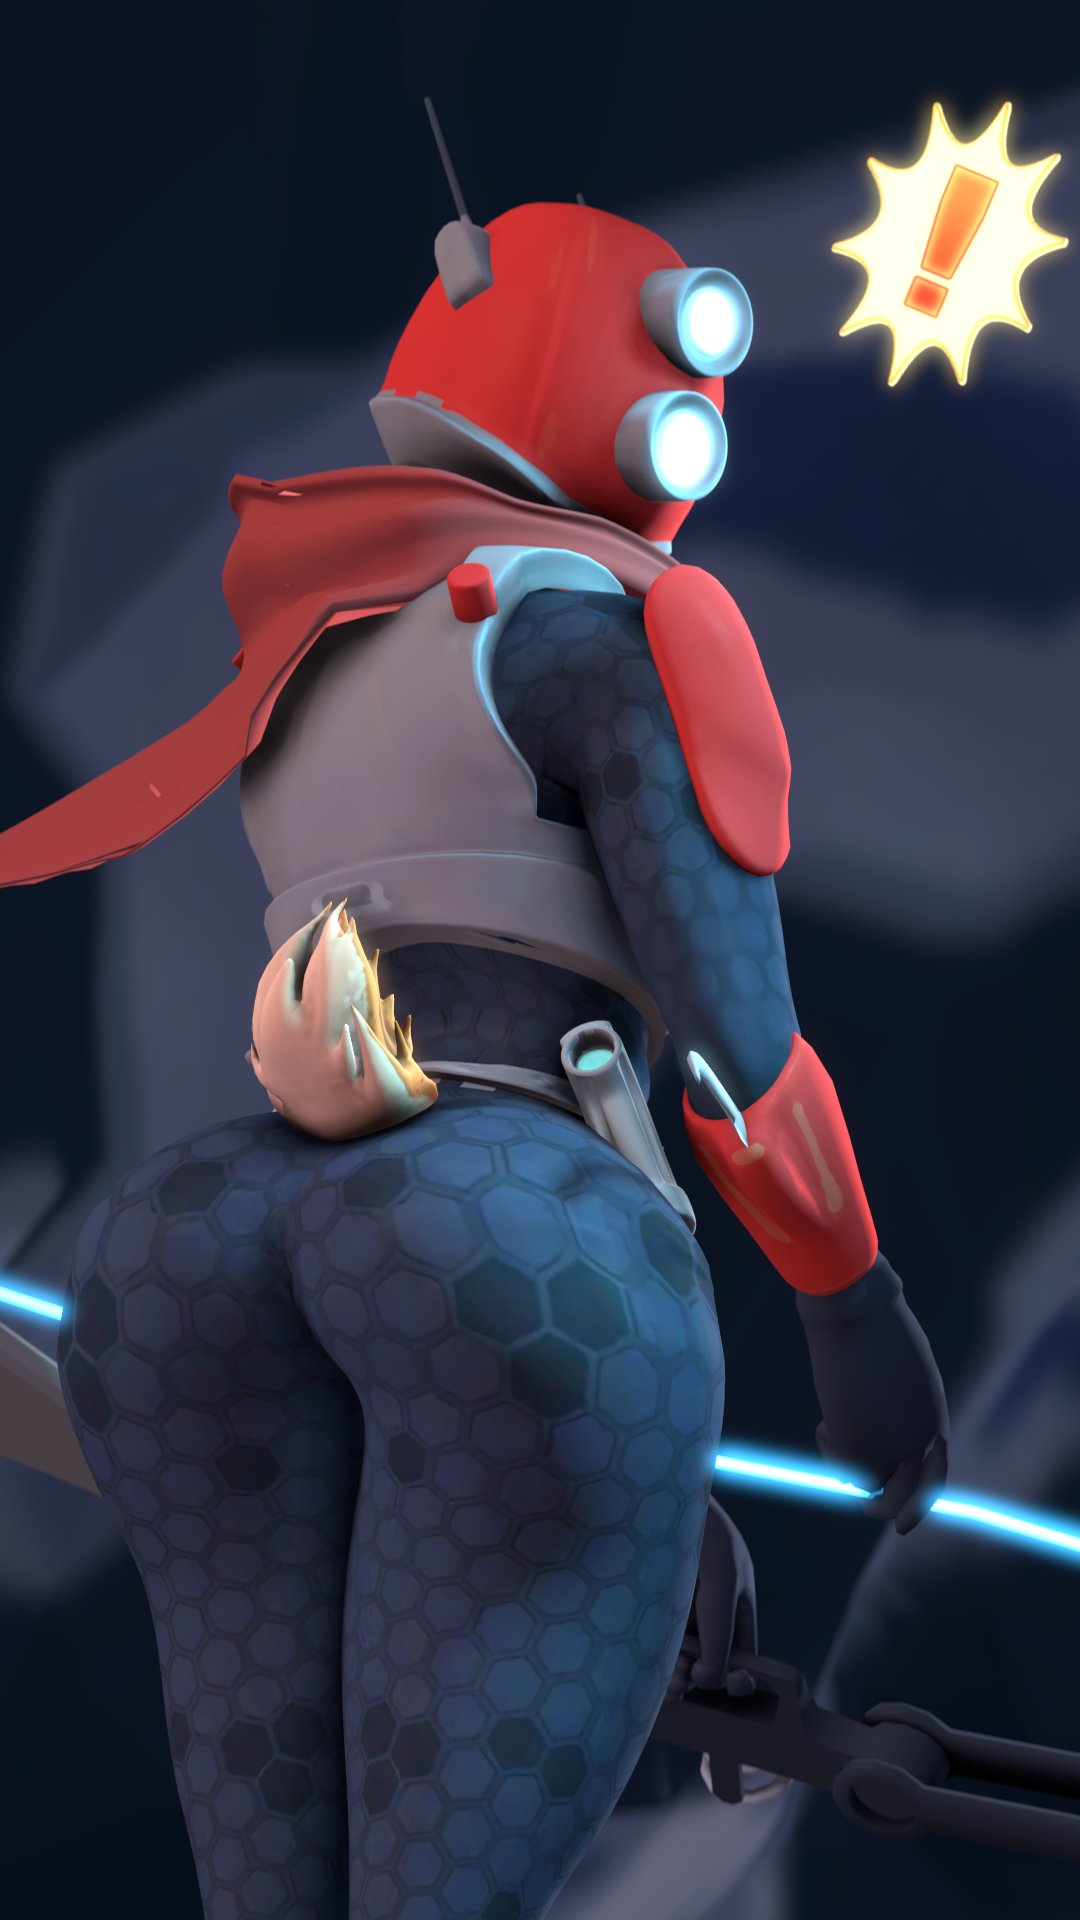 huntress thicc mod of rain risk 2 The witches of crookback bog